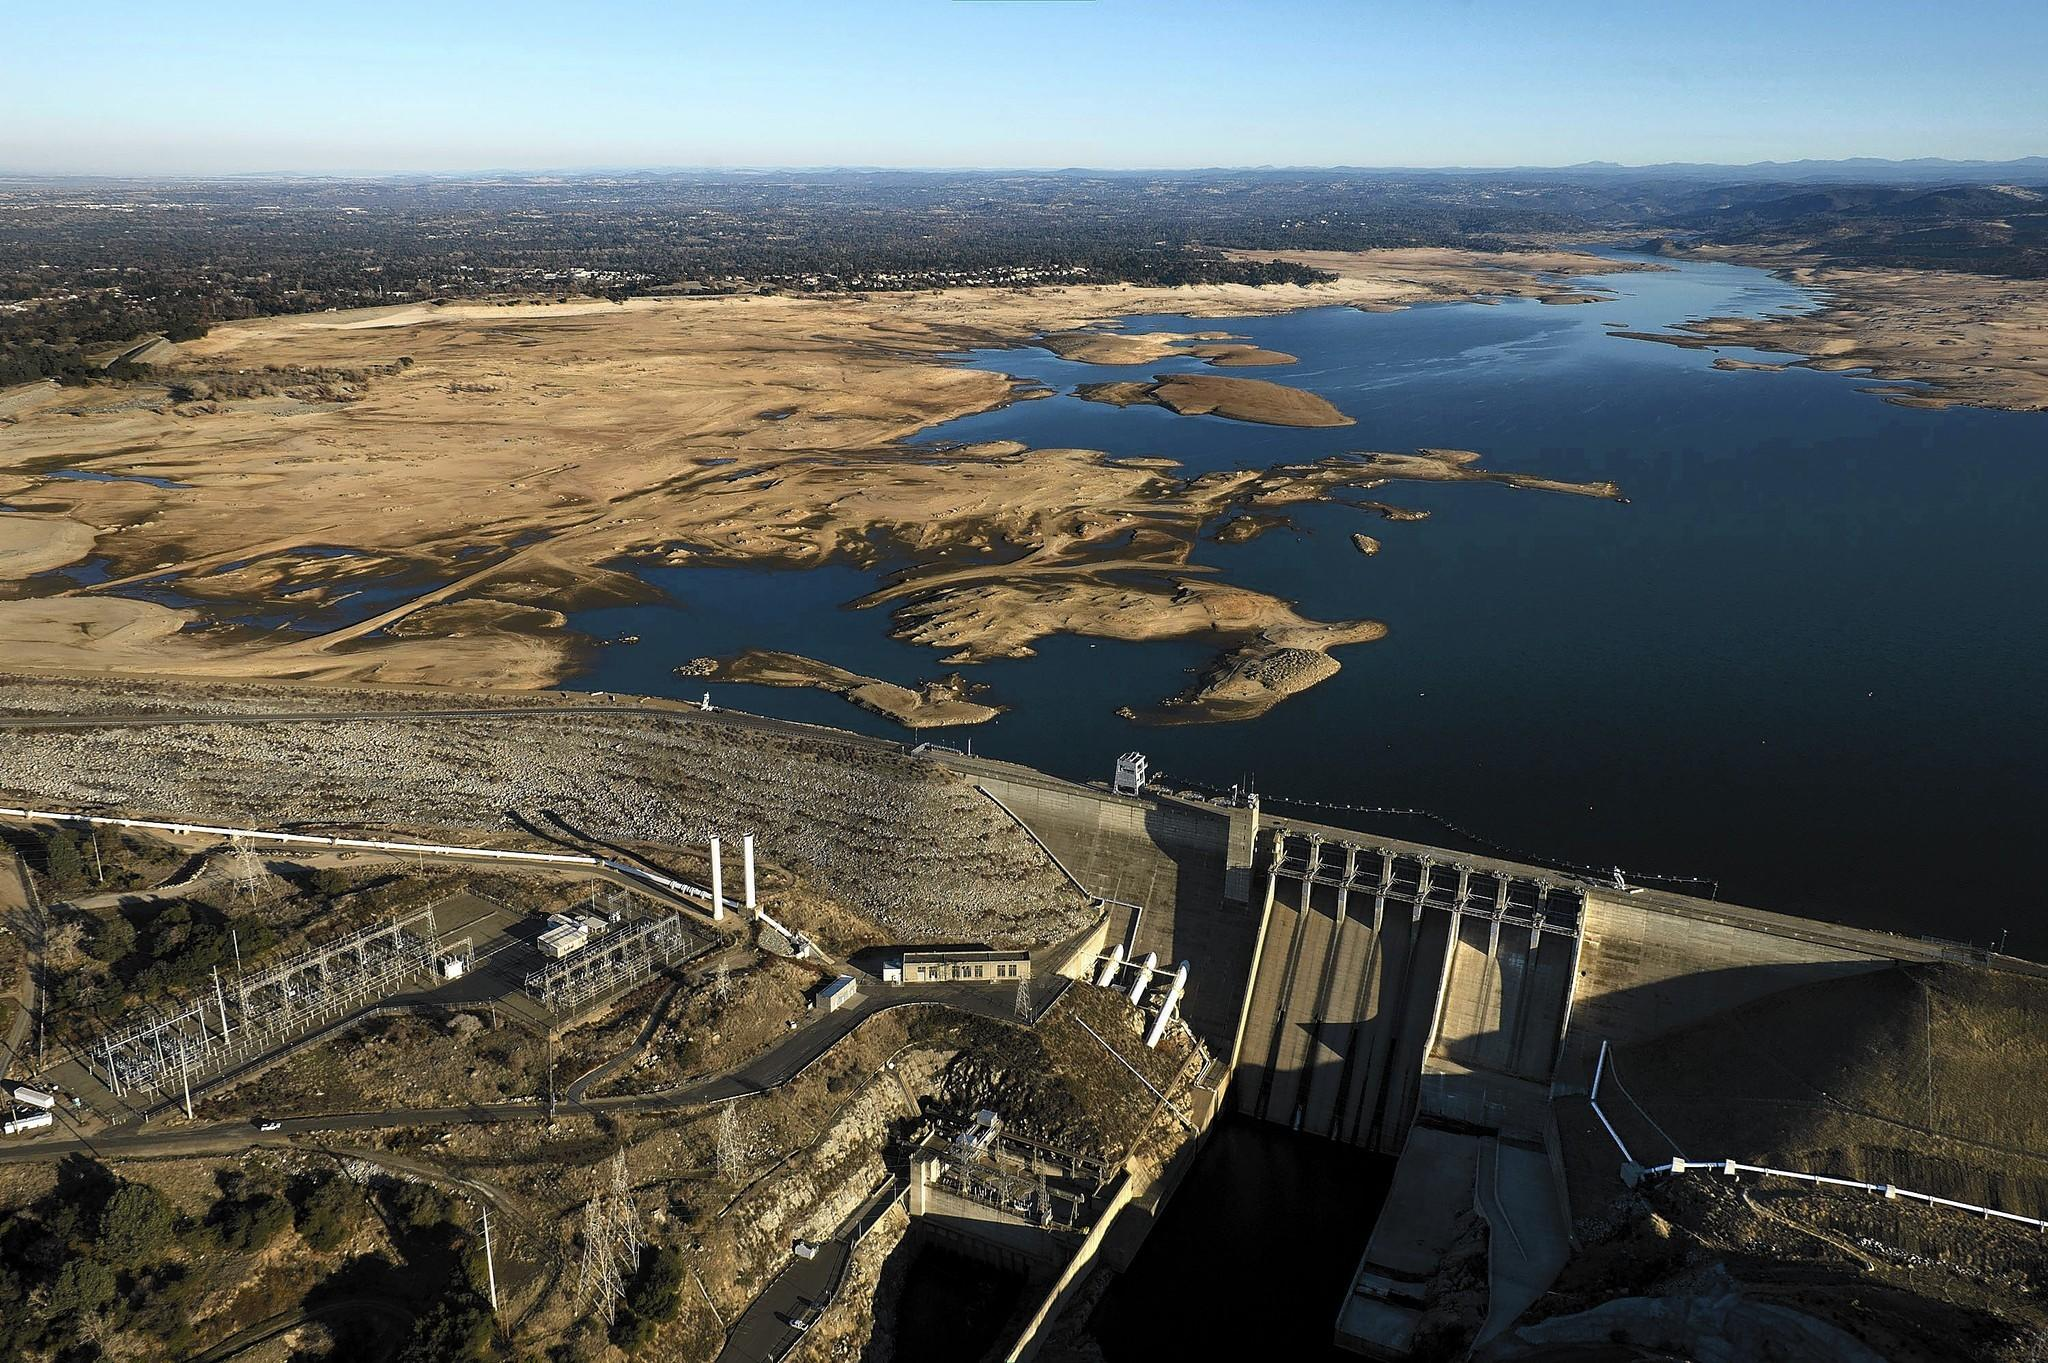 Some of the grimmest water measurements this year are from Folsom Lake on the American River northeast of Sacramento. The reservoir, above, is only 18% full, which is near a record low.